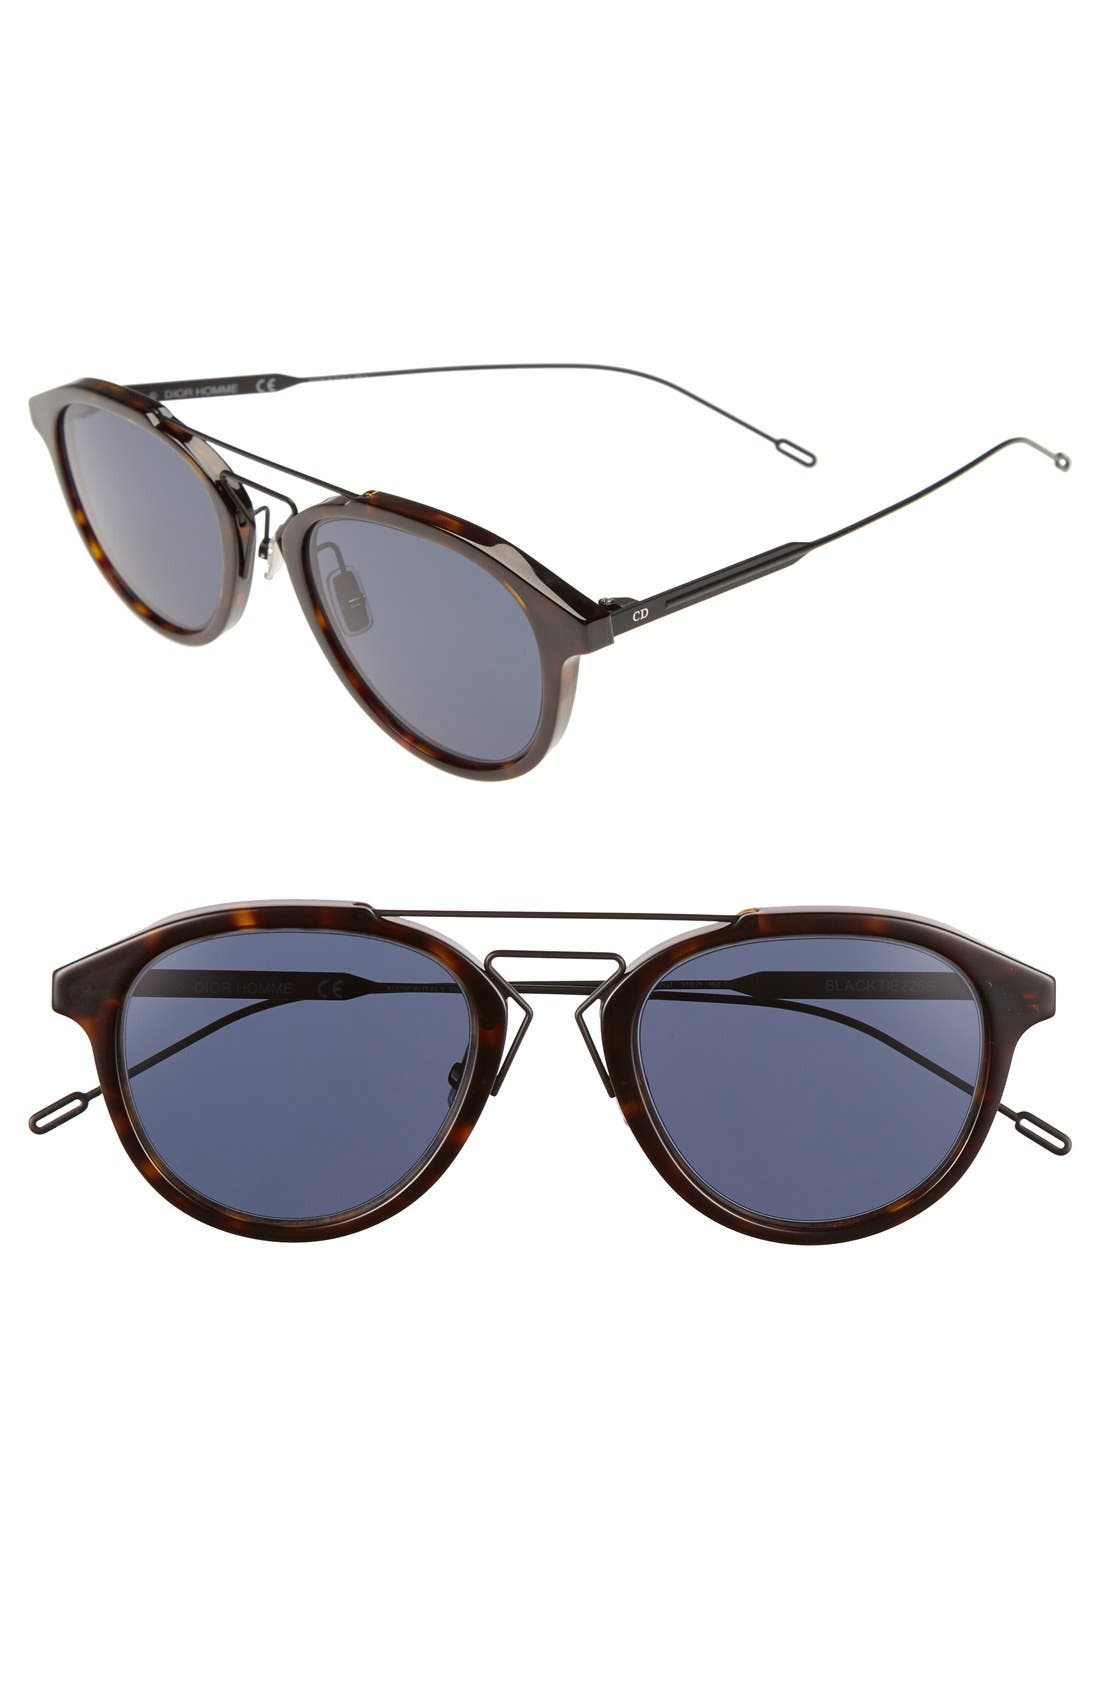 52mm 'Black Tie' Sunglasses,                             Main thumbnail 1, color,